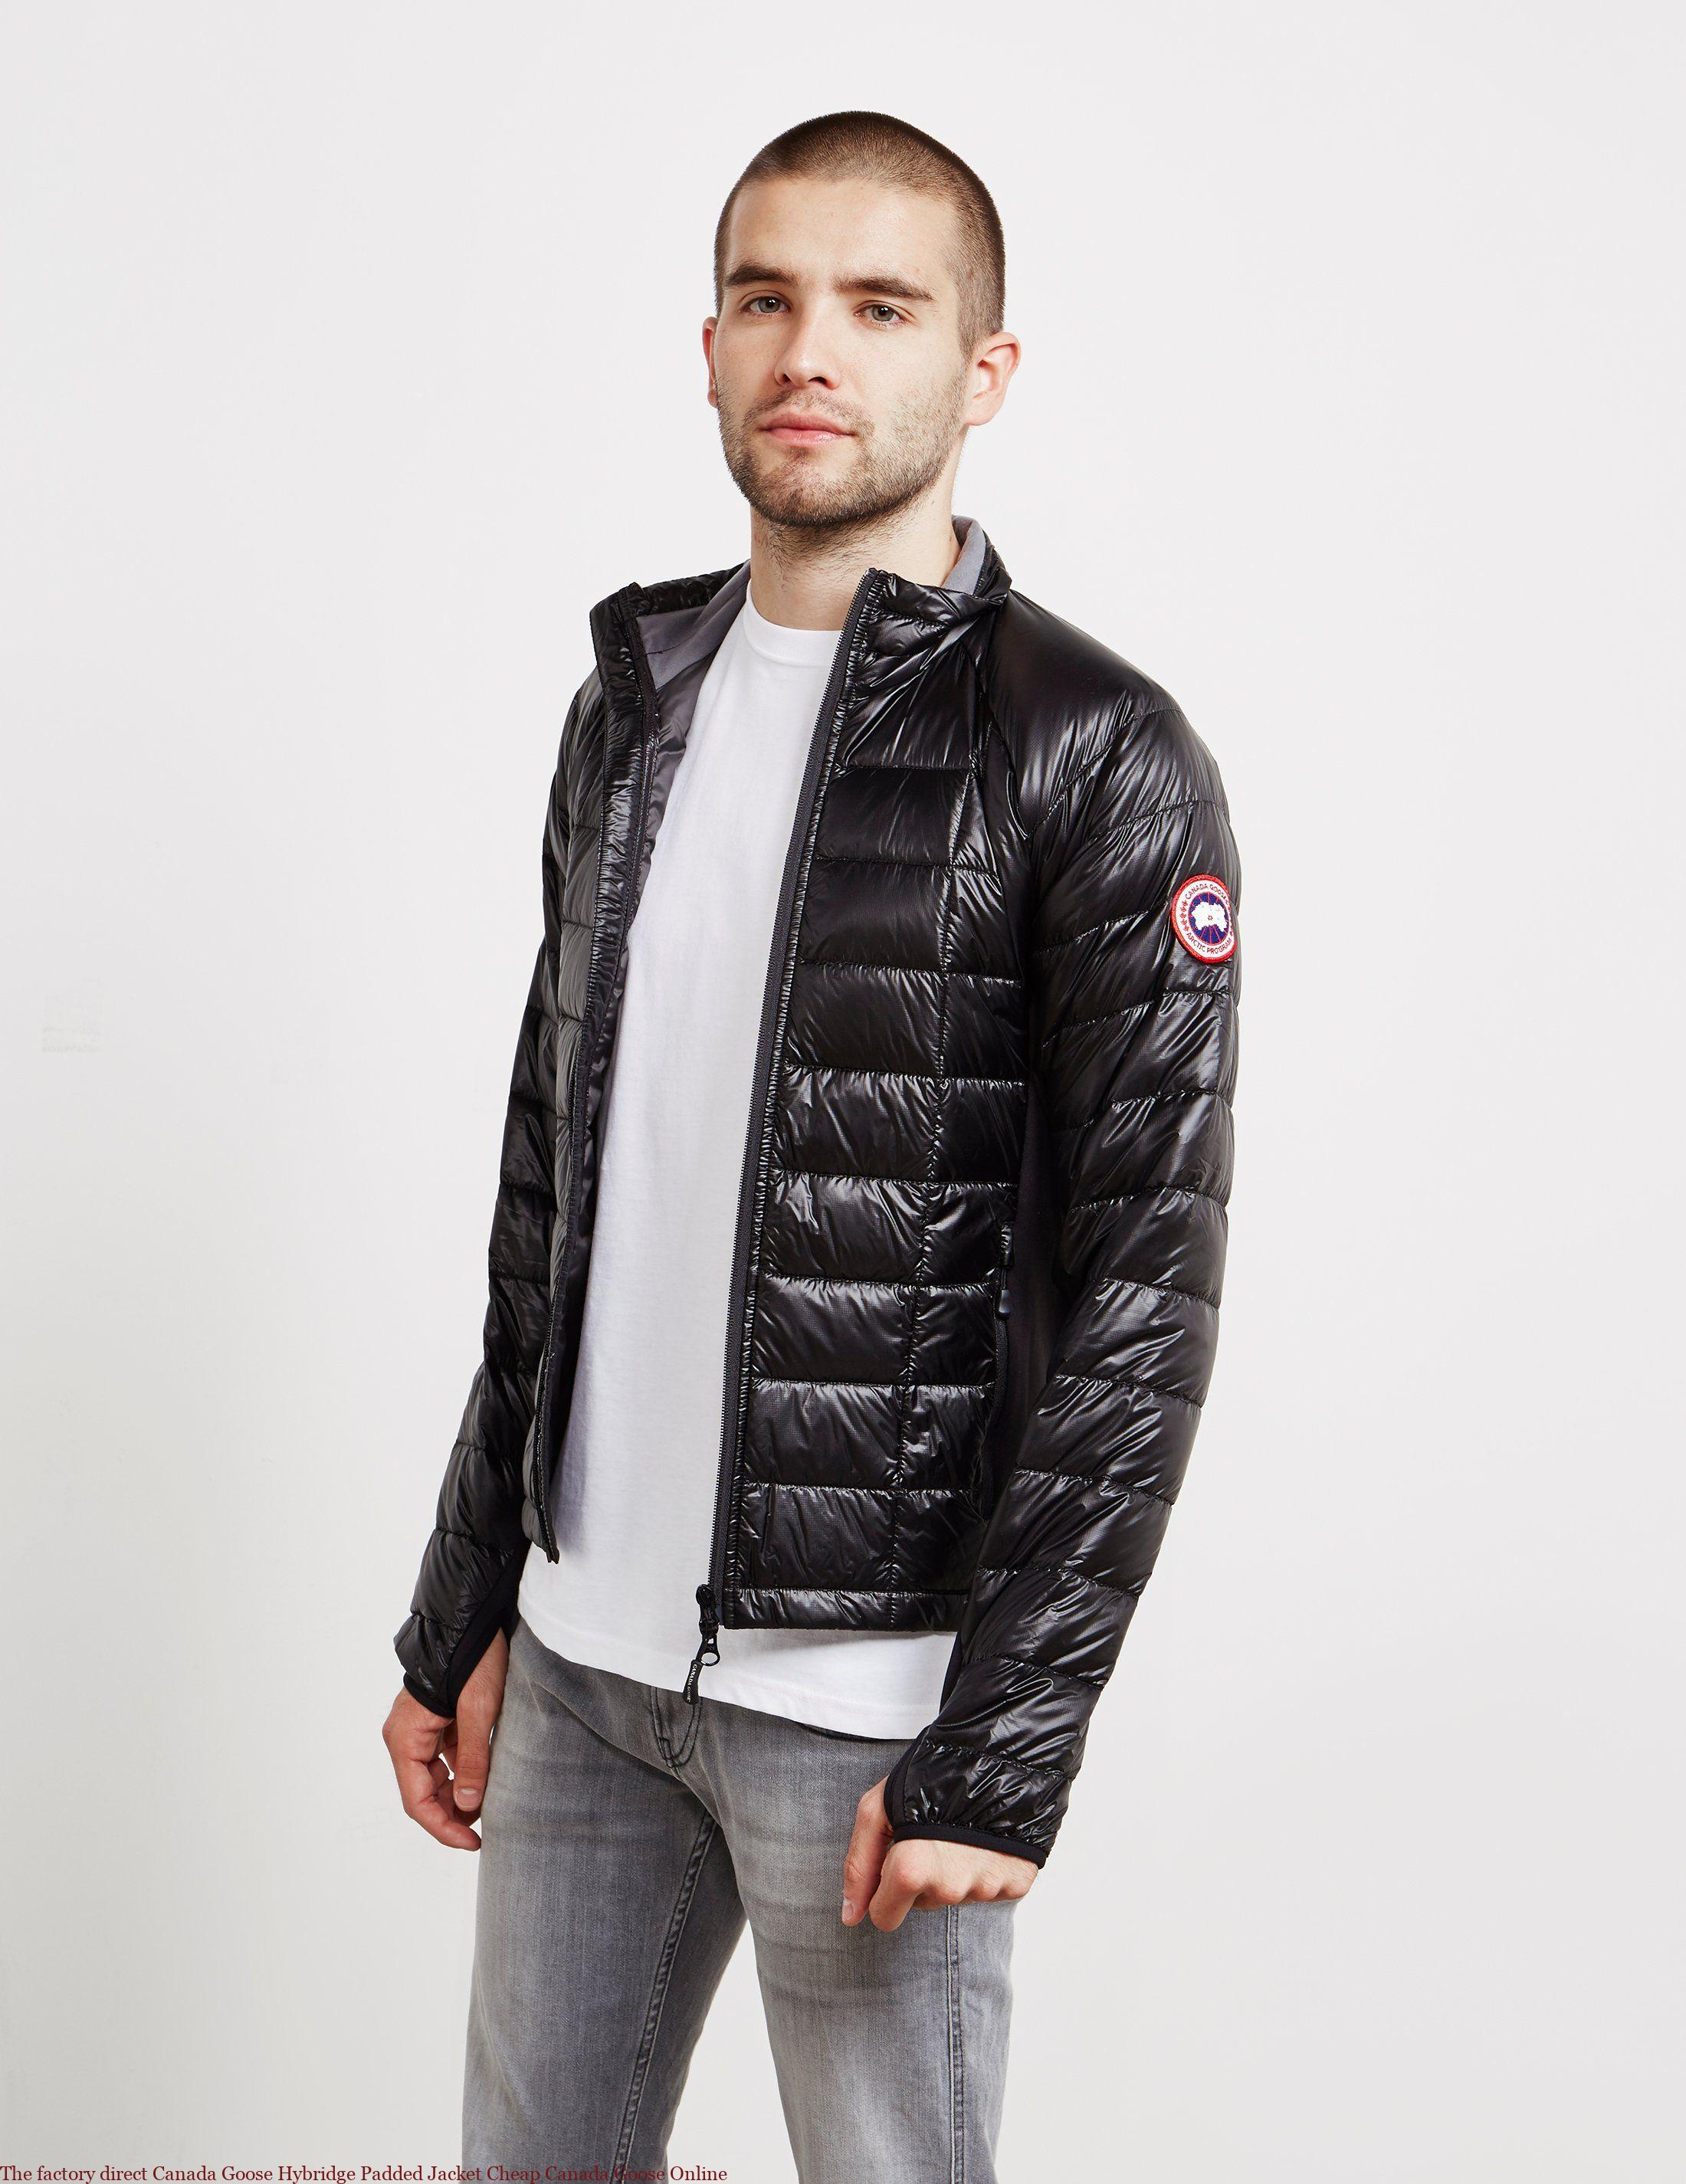 c4addbed4e4 The factory direct Canada Goose Hybridge Padded Jacket Cheap Canada Goose  Online